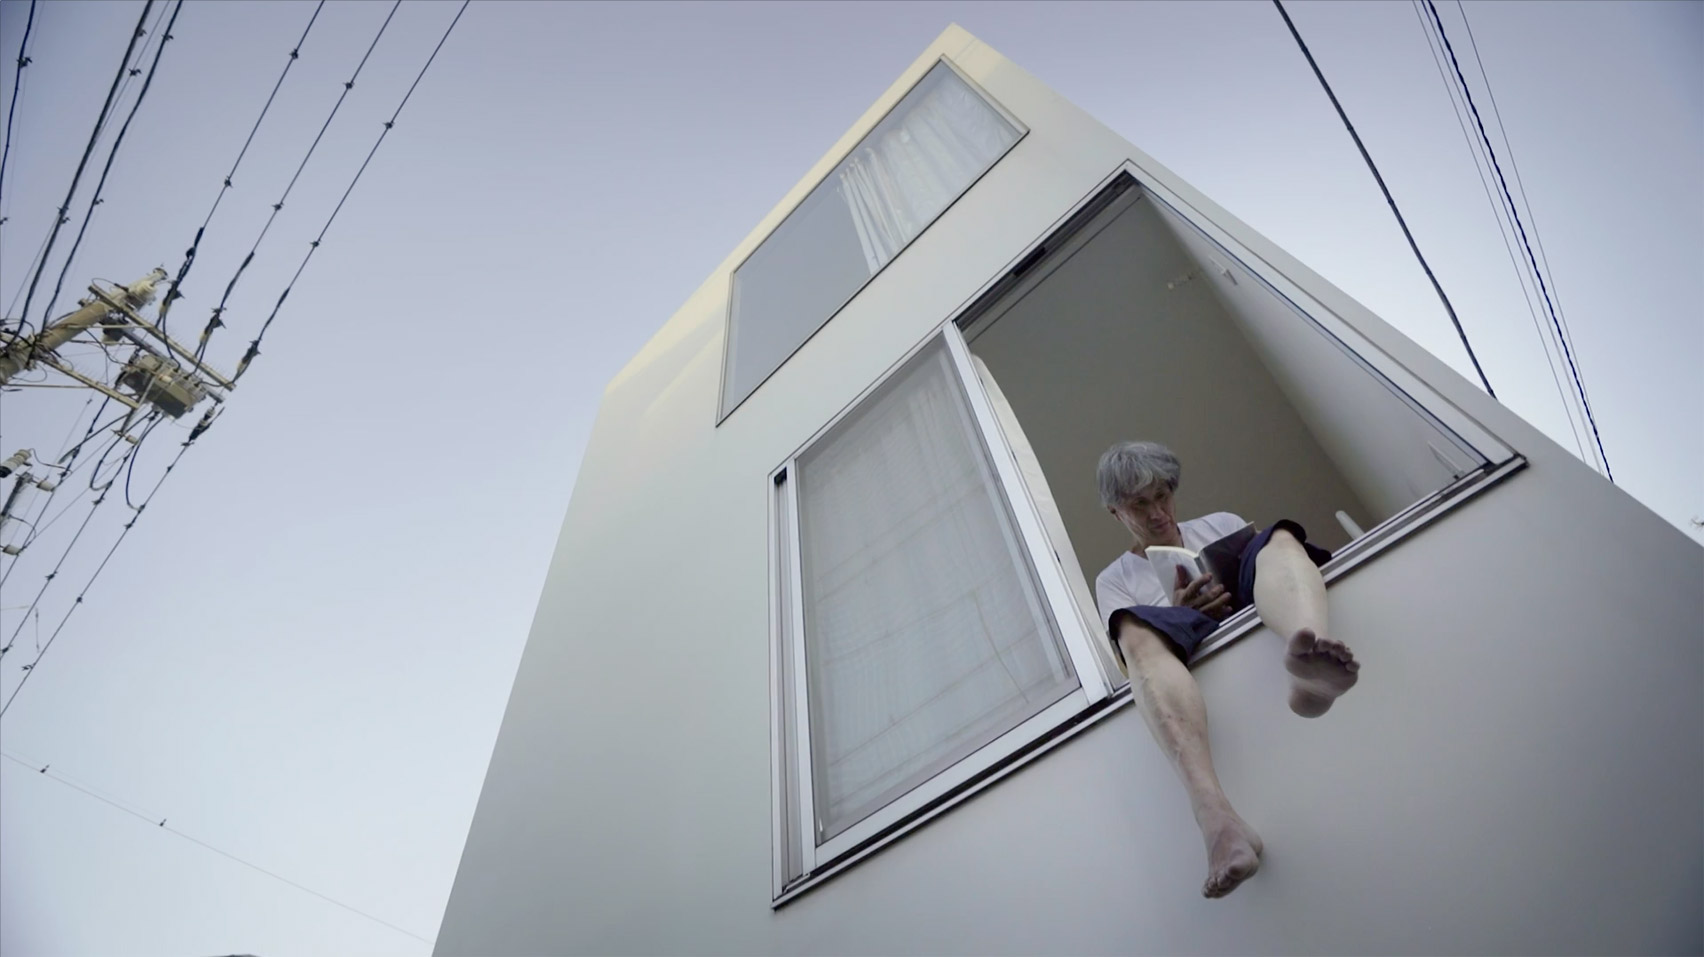 Watch Bêka & Lemoine's movie Moriyama-San, about the owner of Ryue Nishizawa's Moriyama House